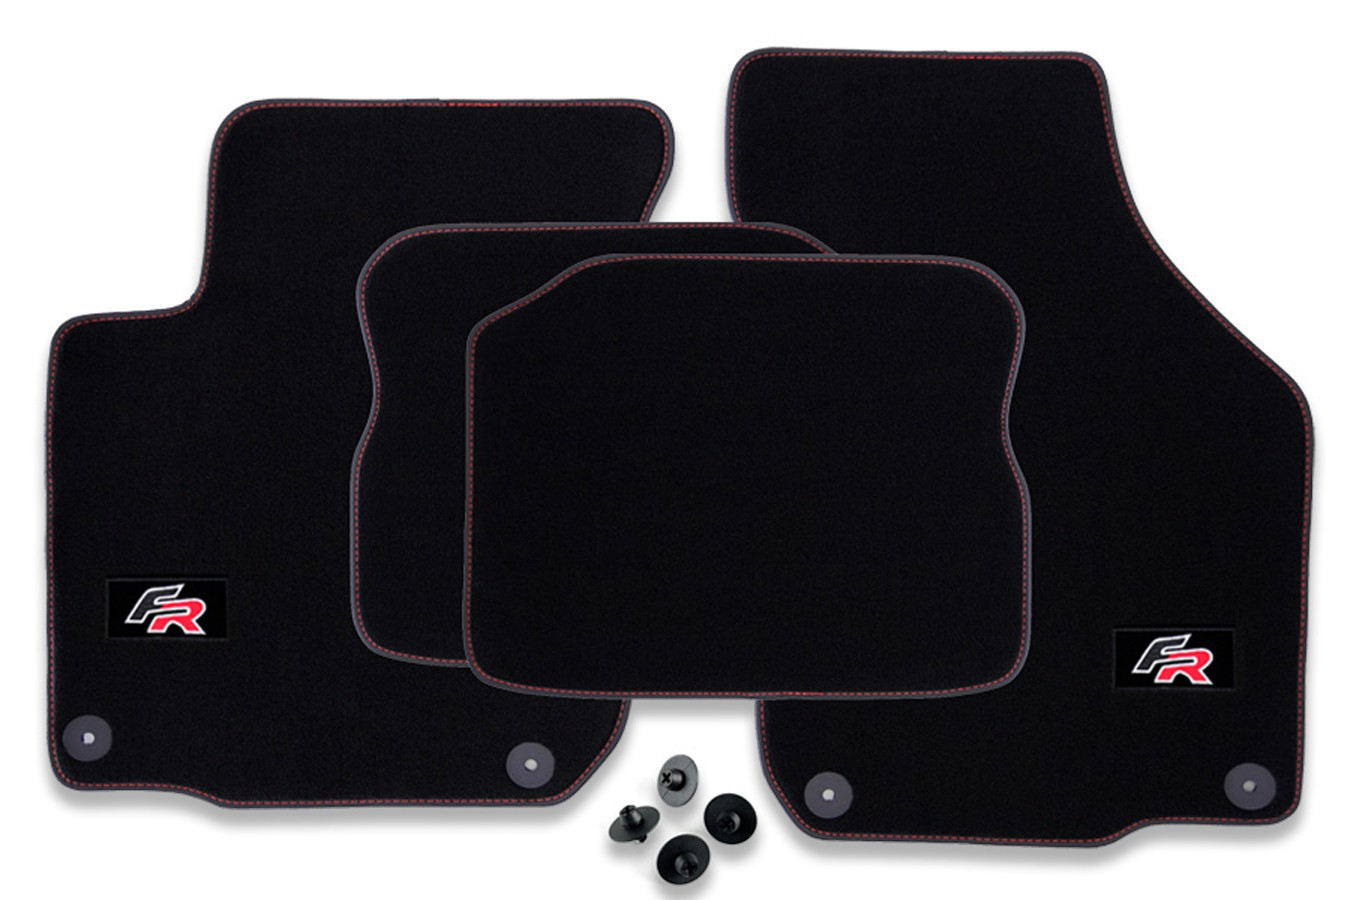 tapis de sol tapis de sol pour voiture moderne design. Black Bedroom Furniture Sets. Home Design Ideas